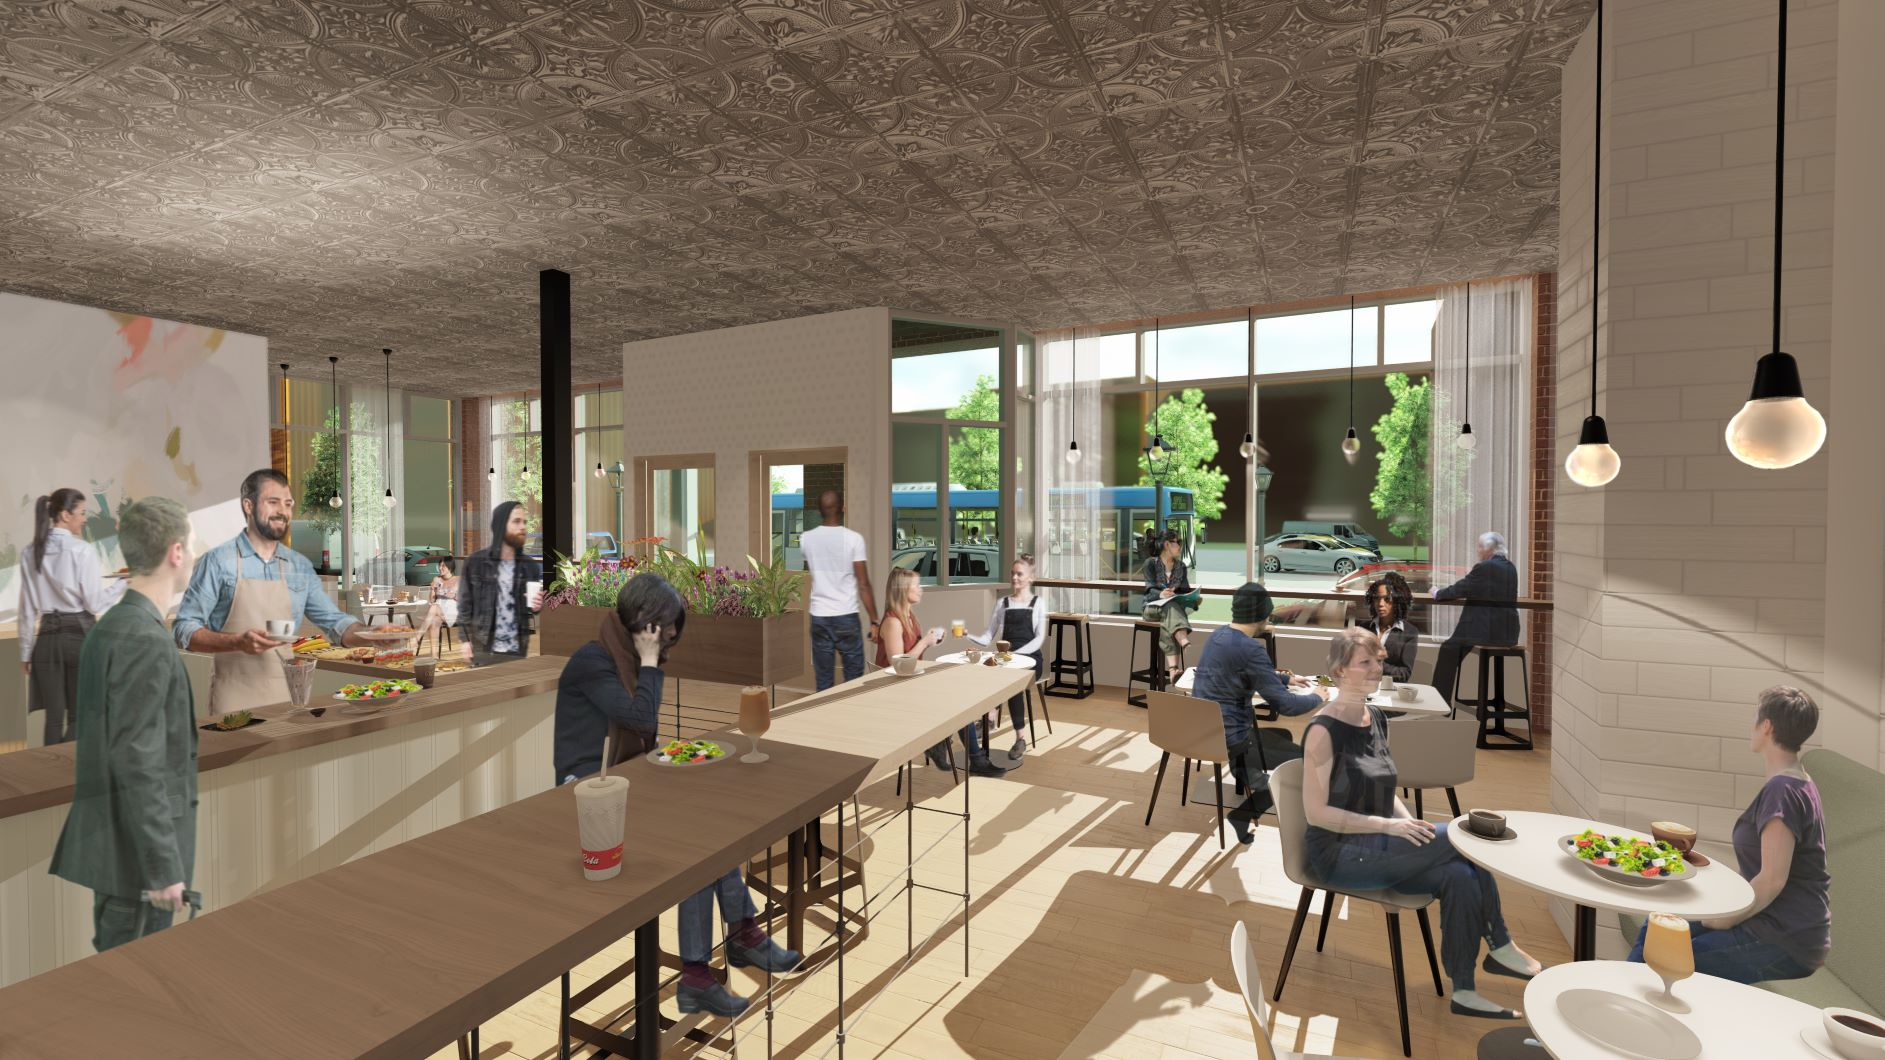 Interior rendering of the commercial space at 87 Washington, Haverhill